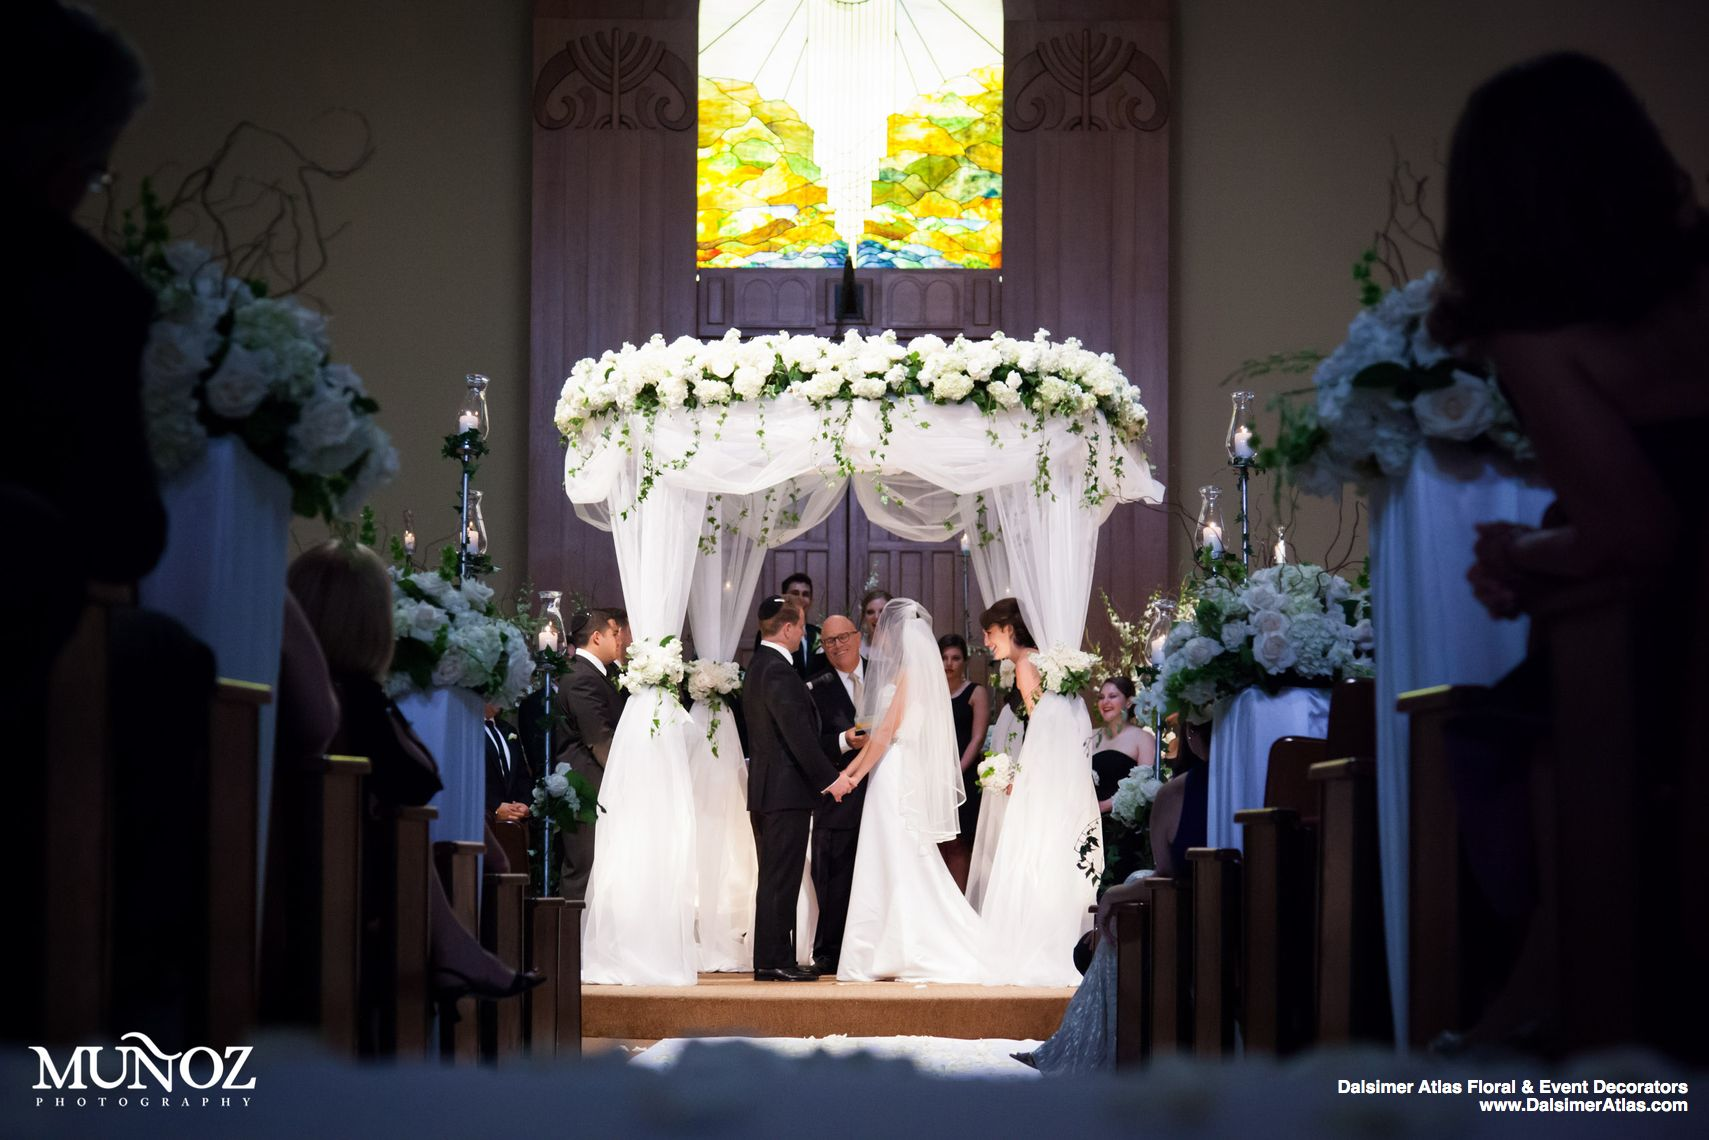 wedding-florist-flowers-decorations-wedding-bnai-israel-boca-raton-florida-dalsimer-atlas-15